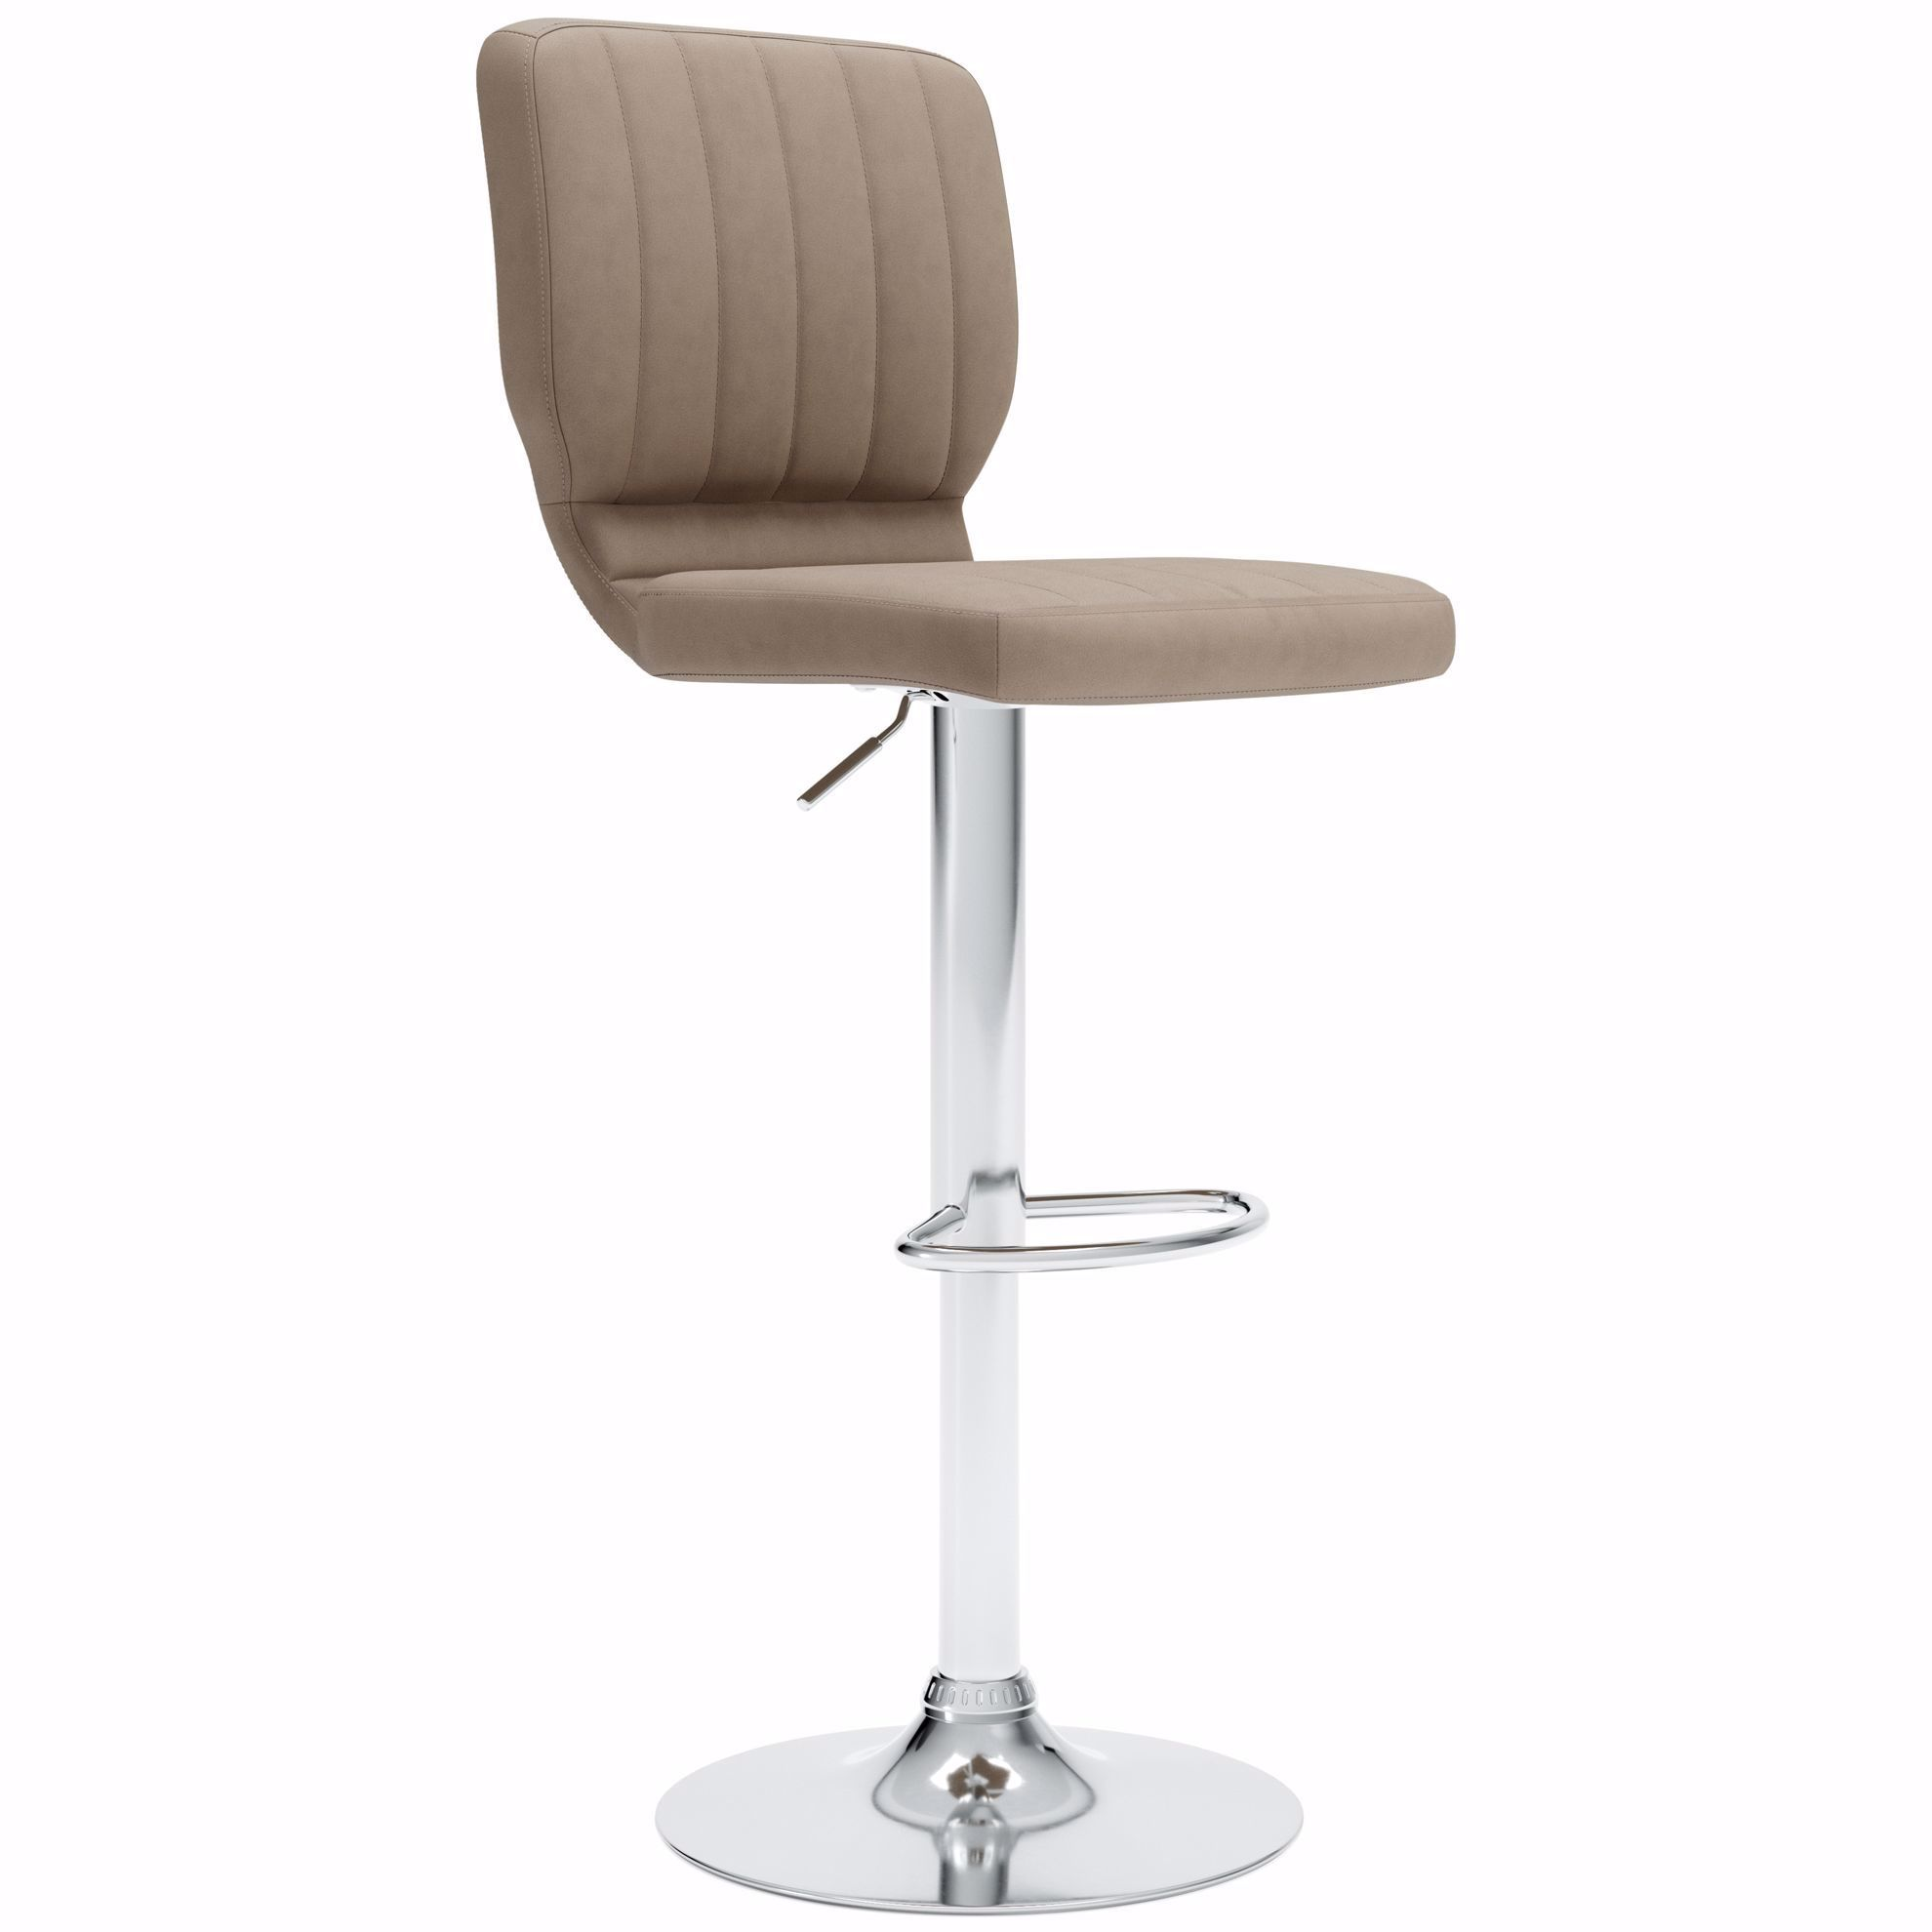 Picture of Pollzen Taupe Upholstered Swivel Adjustable Stool